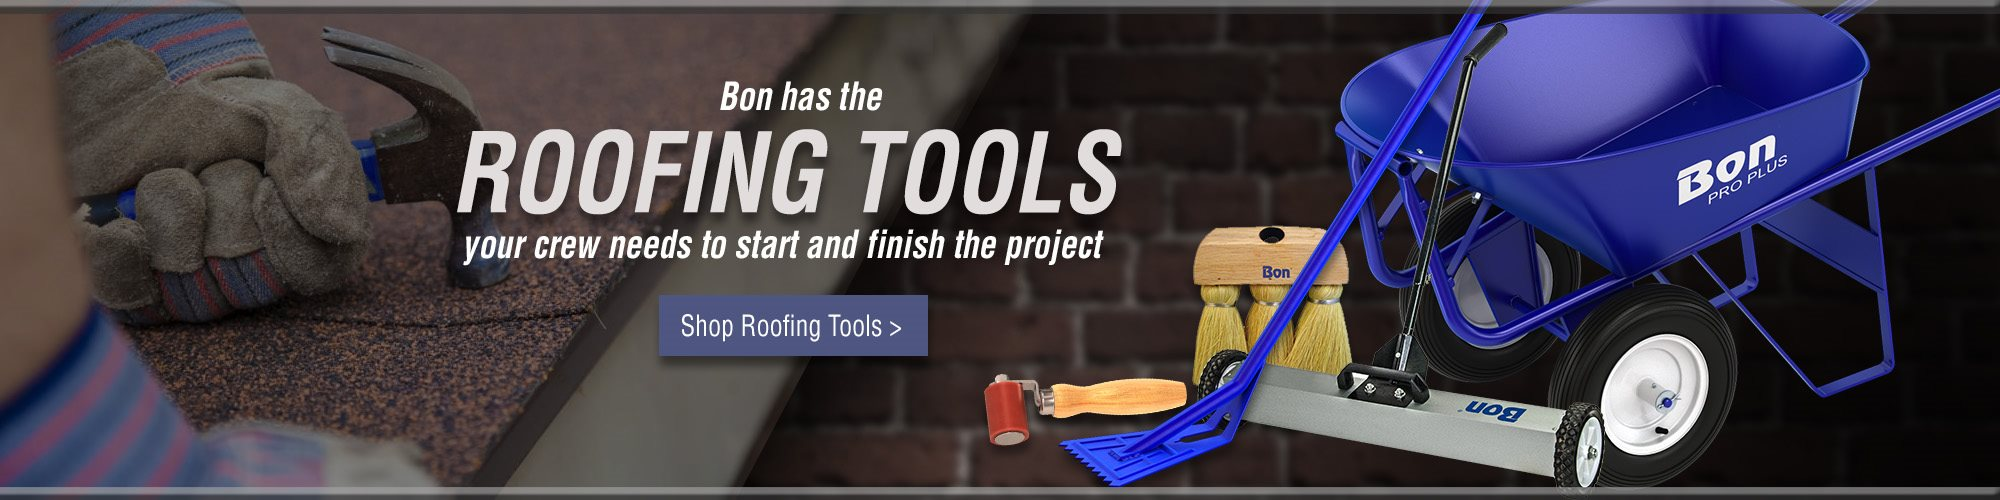 Bon Roofing Tools